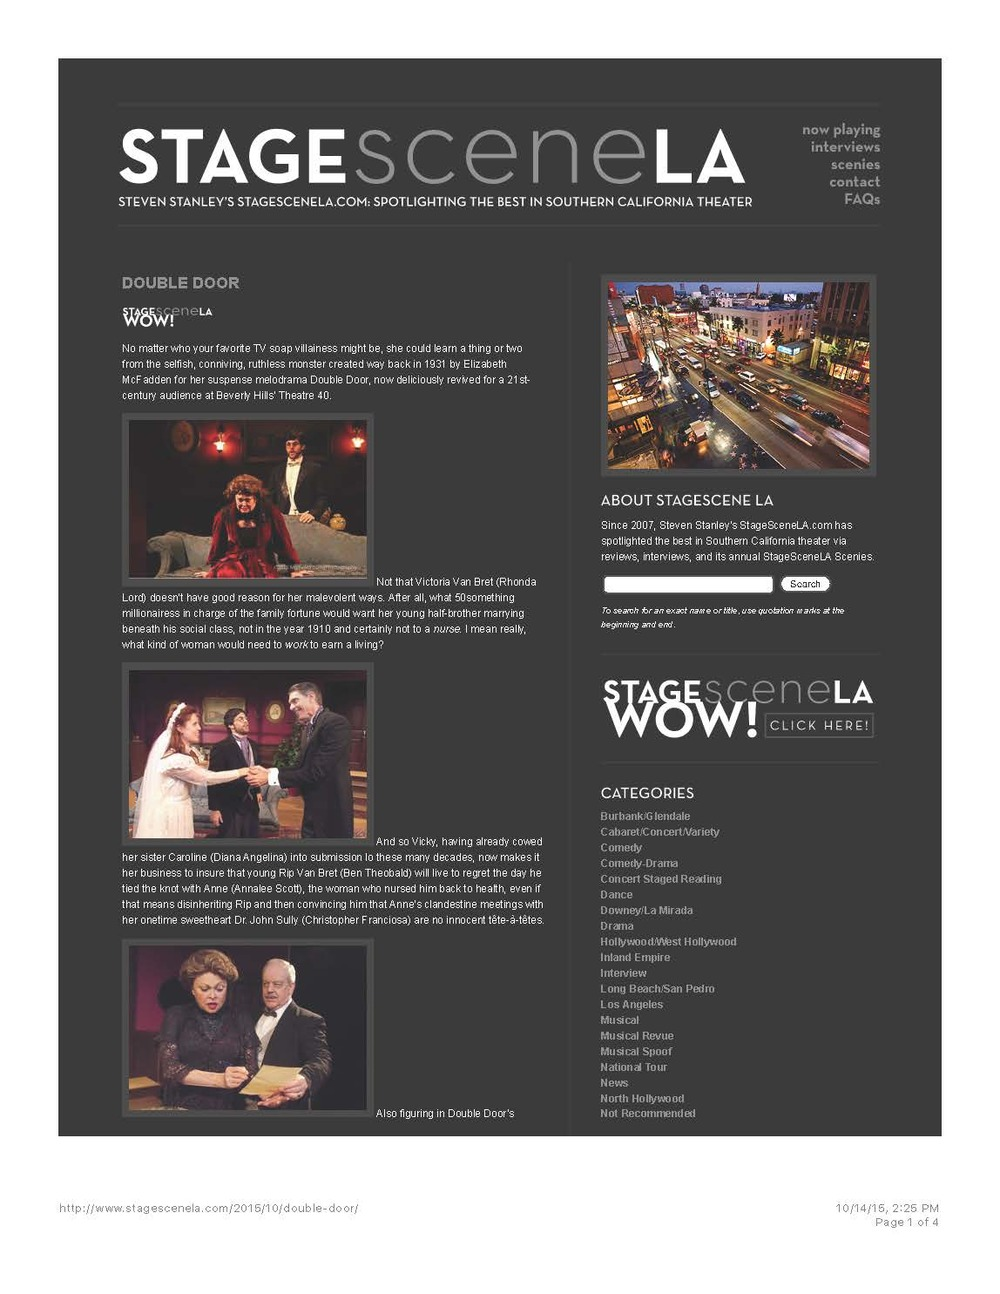 StageSceneLA Press_Page_1.jpg